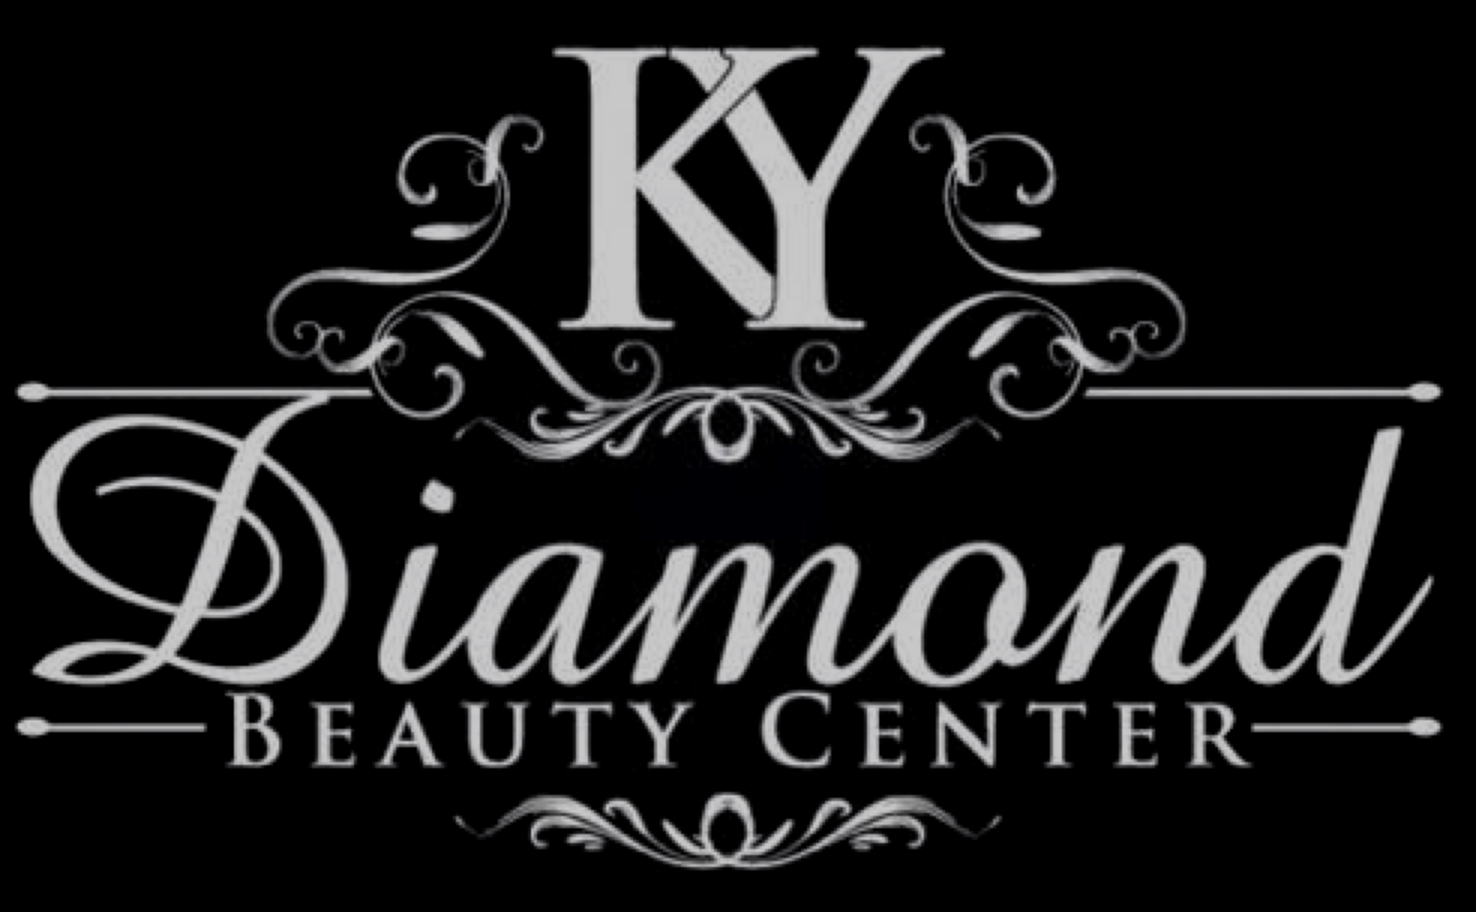 Kydiamondbeautycenter